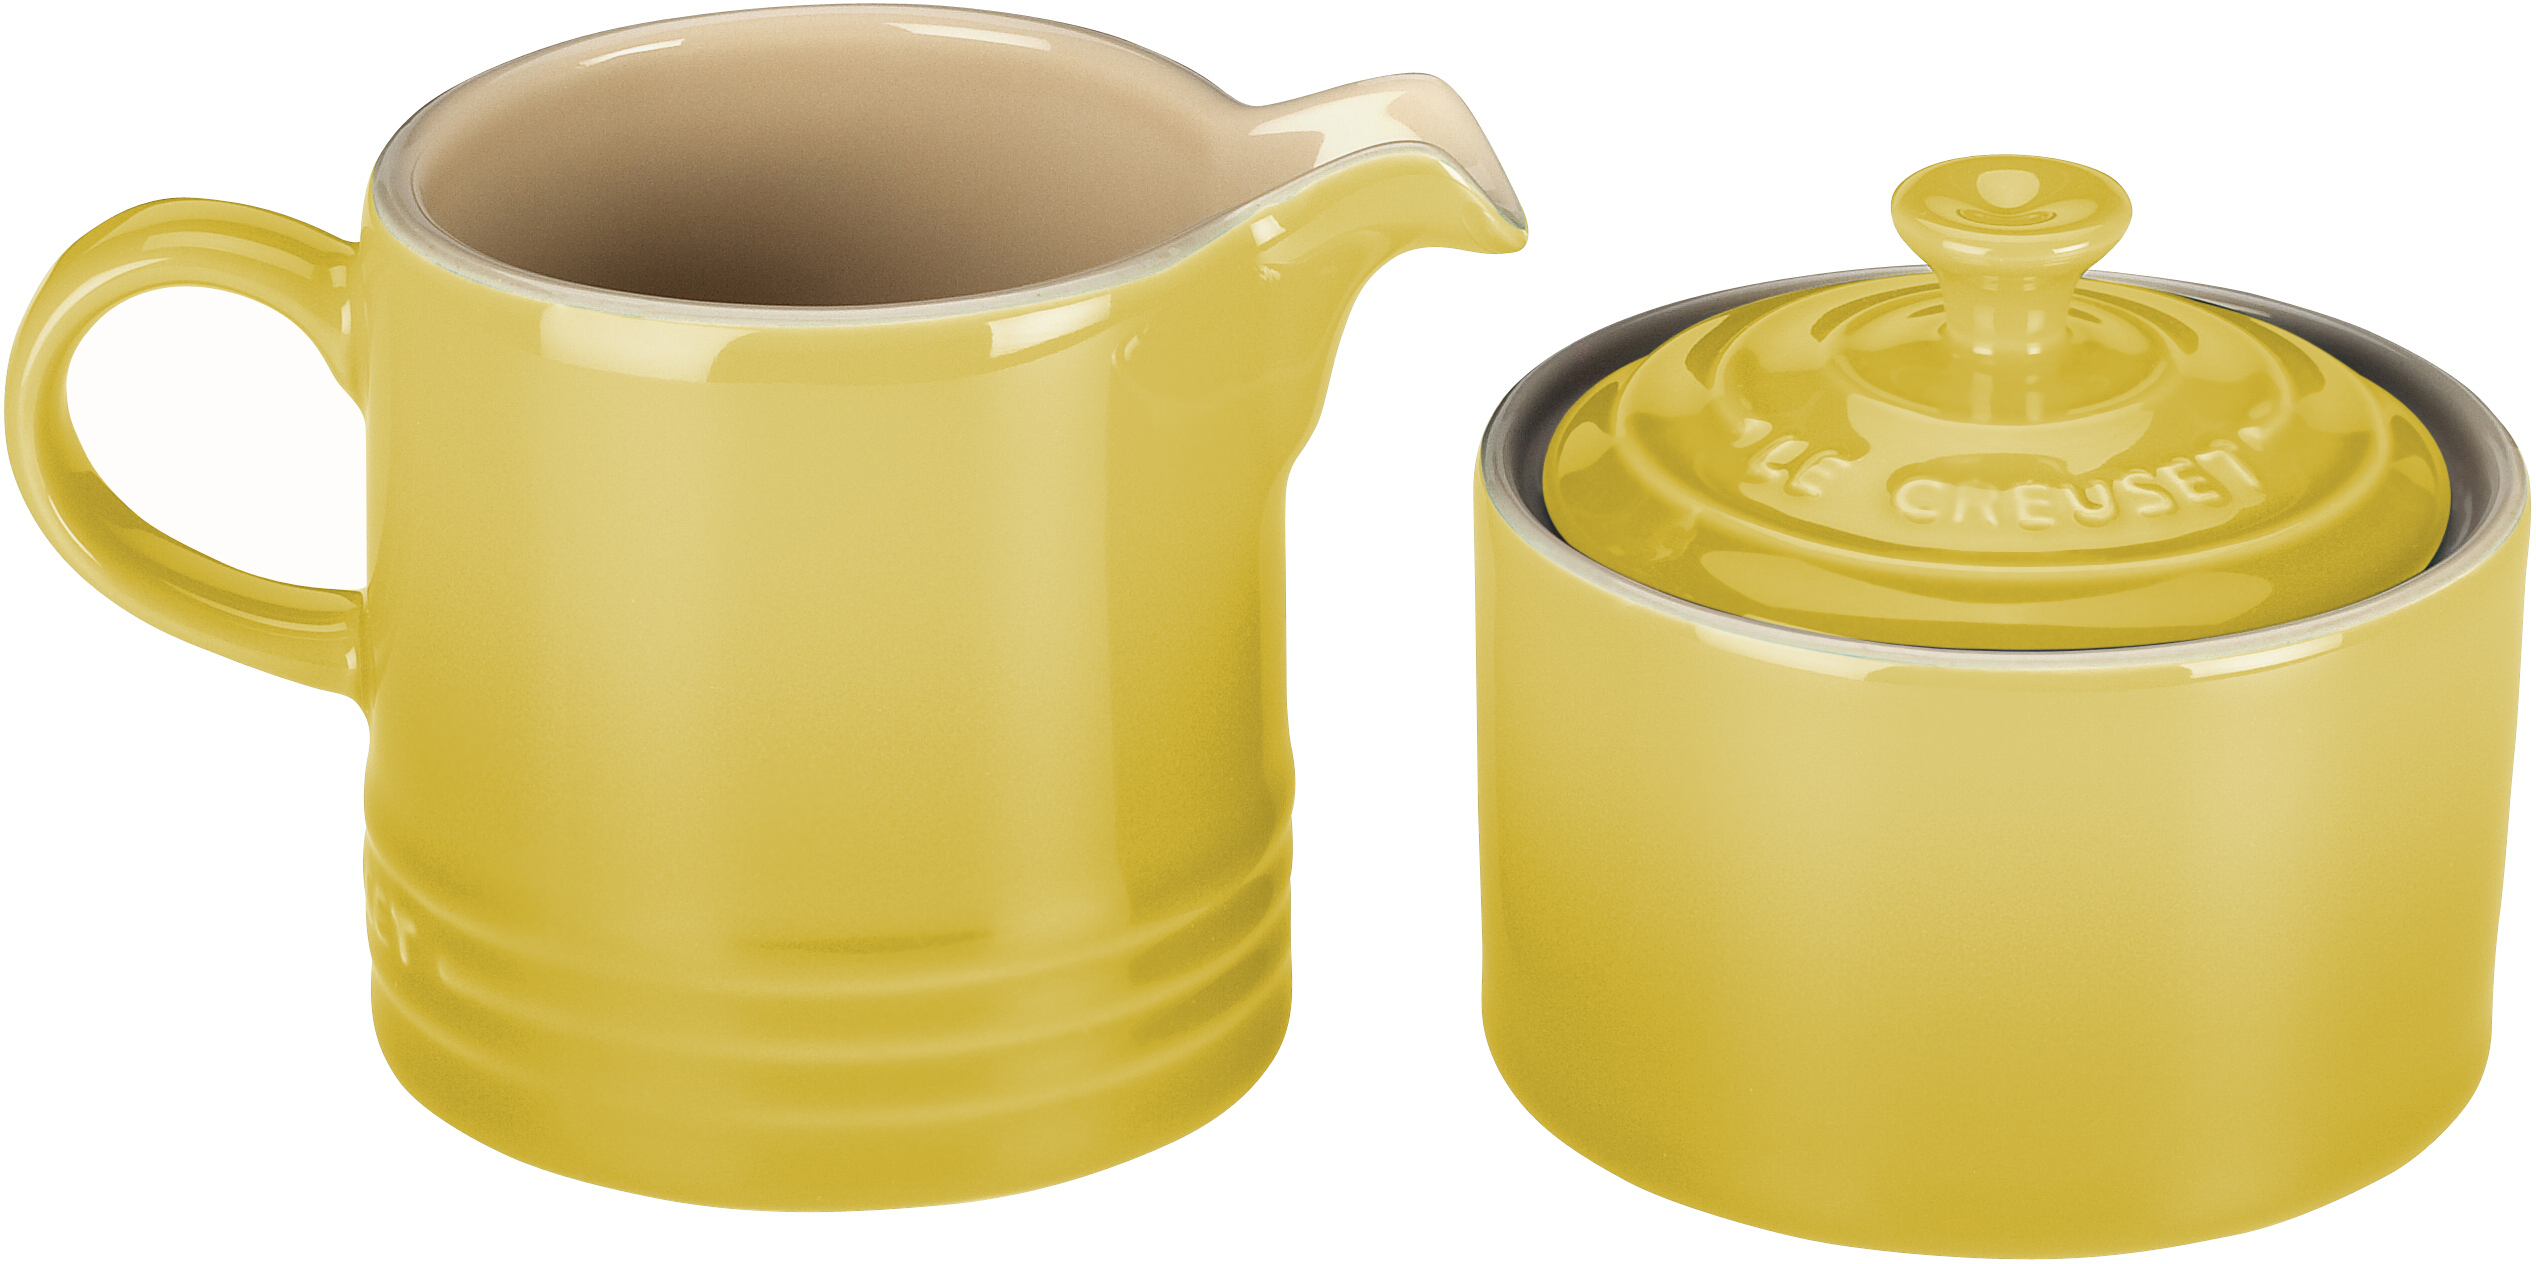 Le Creuset Soleil Yellow Stoneware Cream and Sugar Set